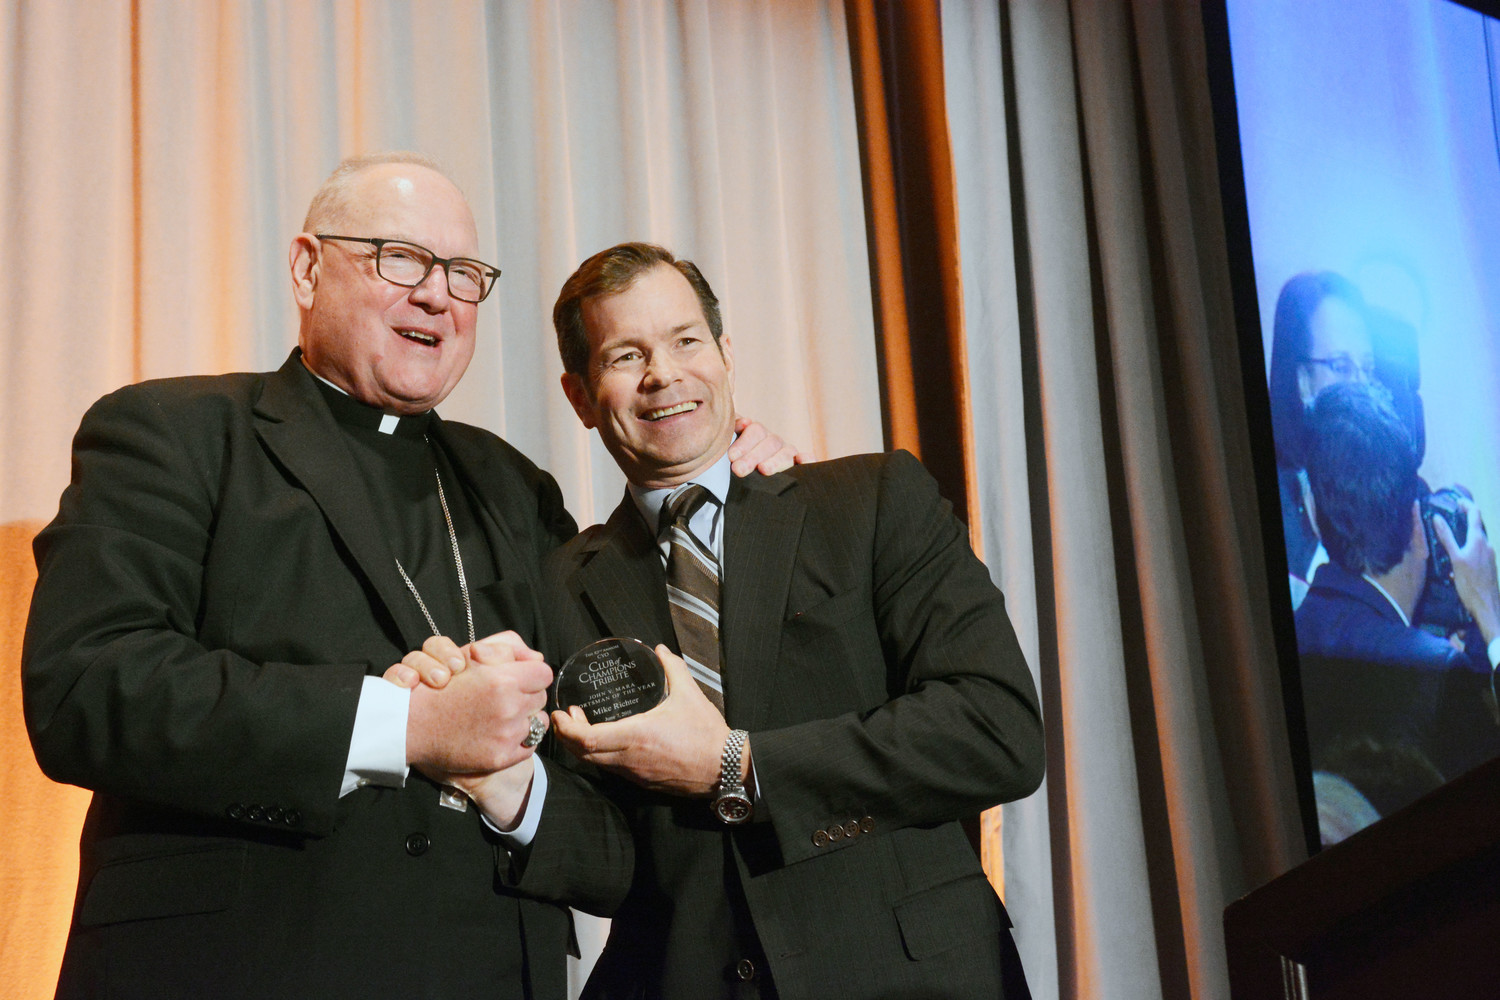 Mike Richter, a member of the 1994 Stanley Cup champion New York Rangers, receives the John V. Mara Sportsman of the Year Award from Cardinal Dolan at the 82nd annual CYO Club of Champions Tribute at the InterContinental New York Barclay in Manhattan June 7. Richter, now president of Brightcore Energy in Armonk, was honored with attorney Martin Edelman, Gold Medal winner, and philanthropist Mark D'Urso, Terence Cardinal Cooke Humanitarian Award winner.